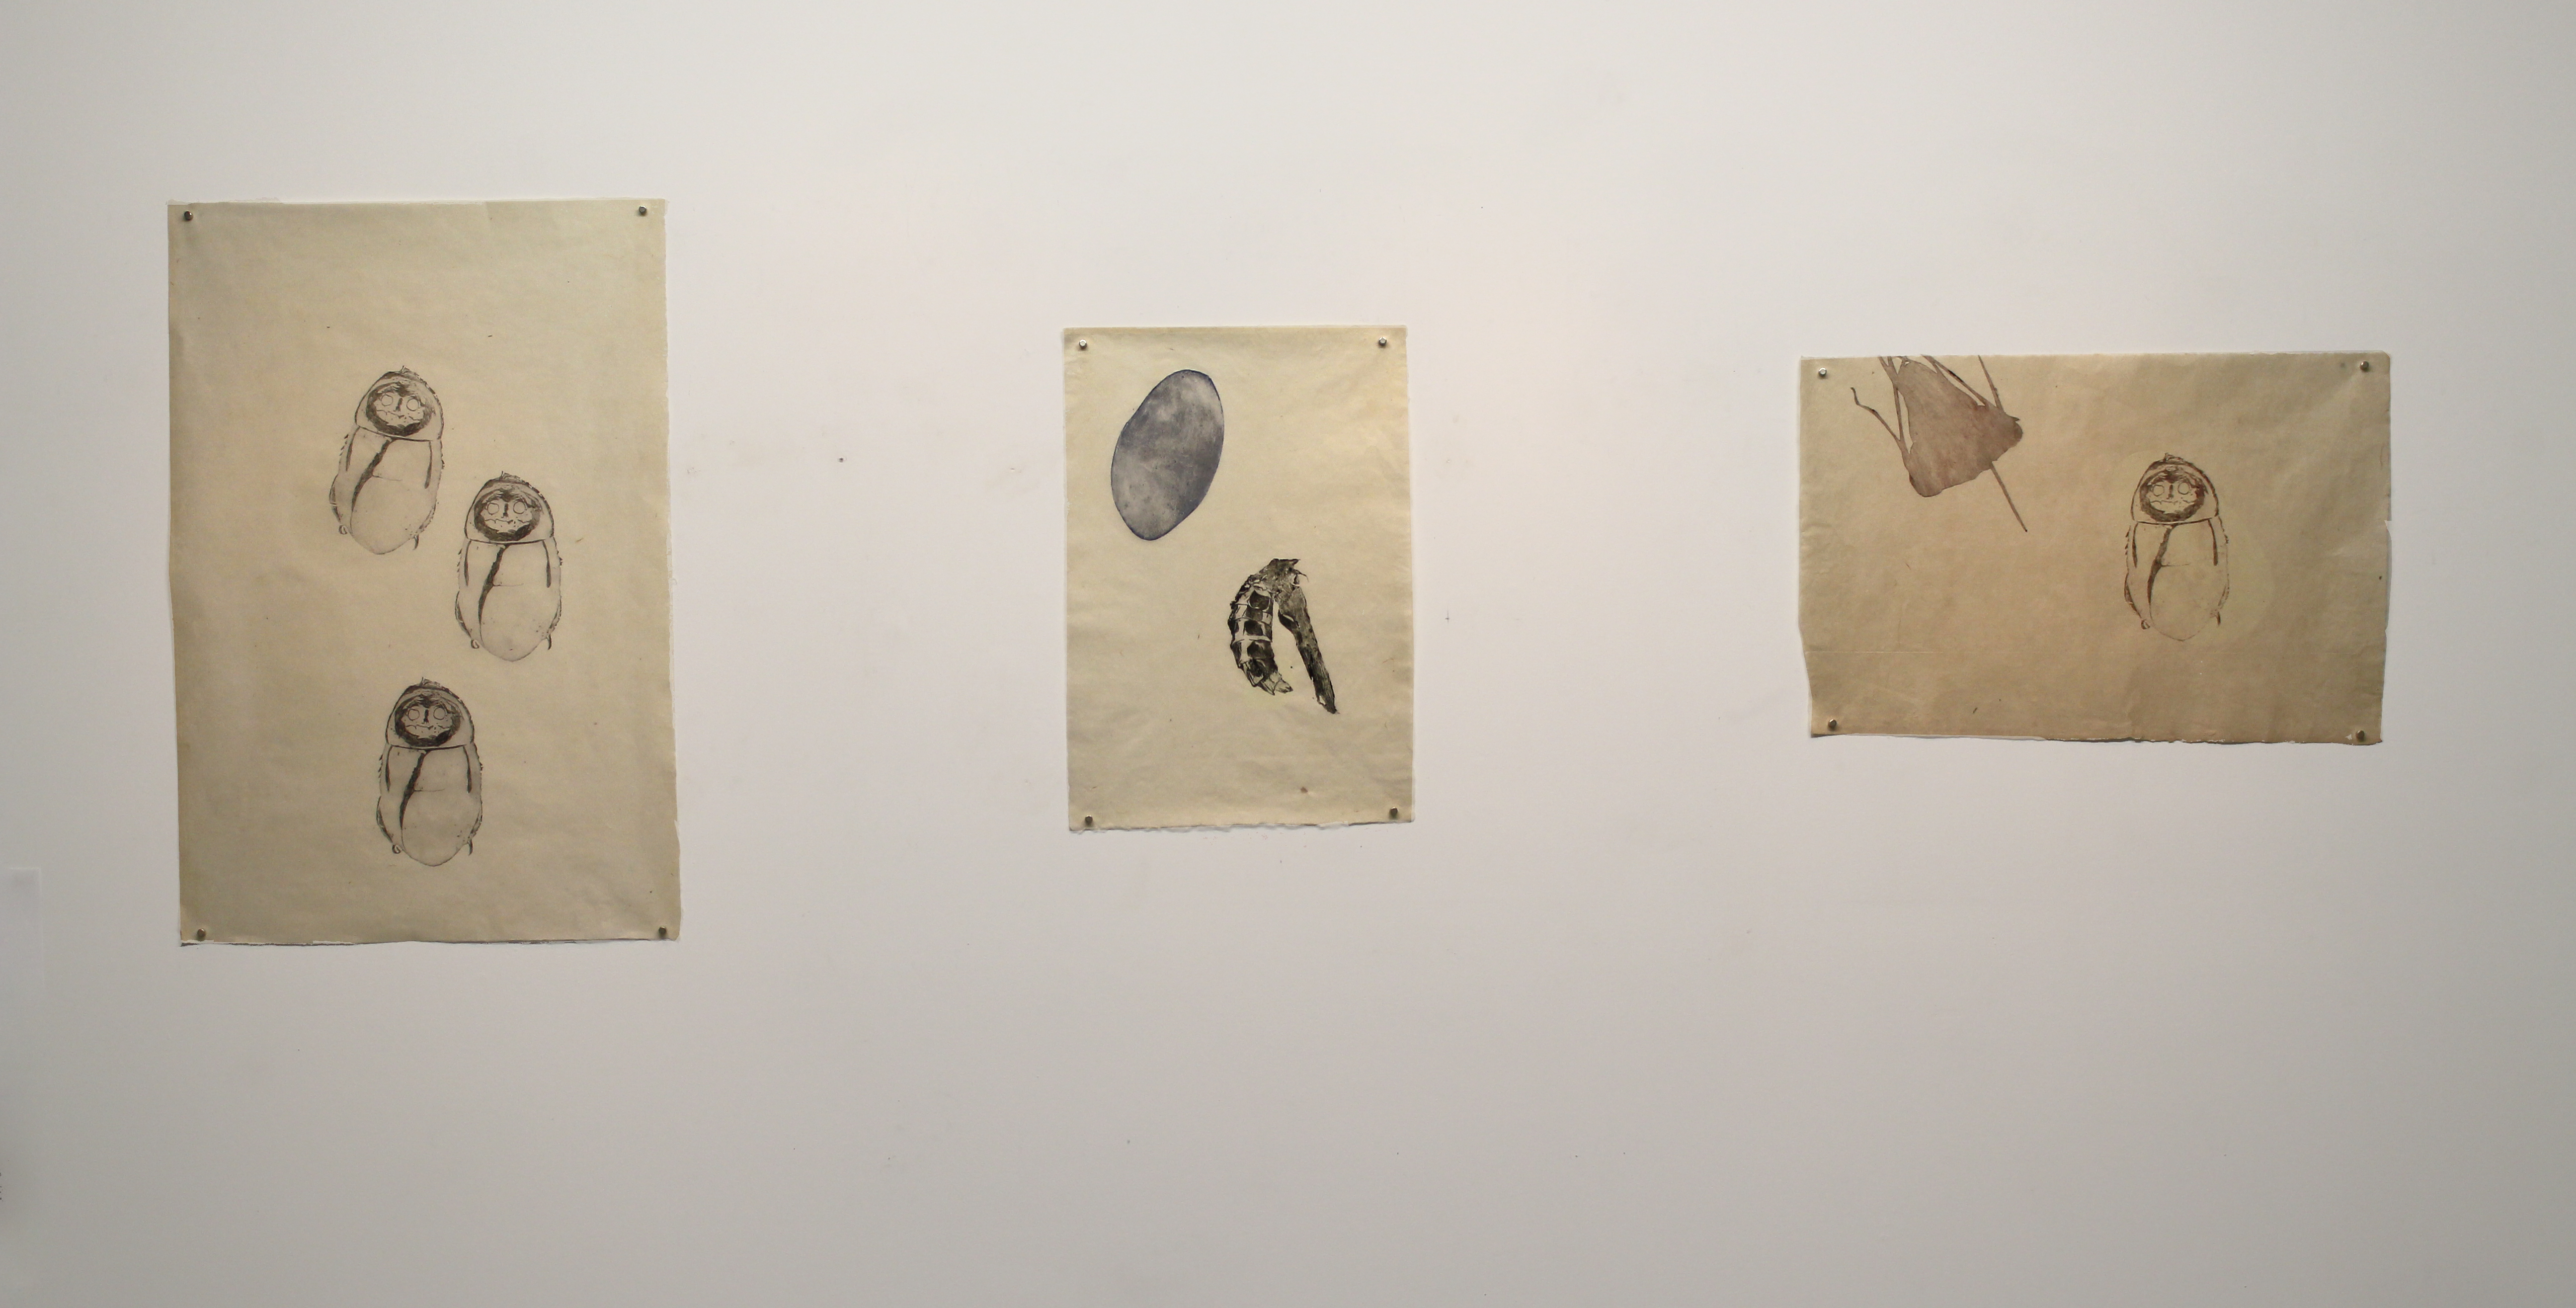 Installation view Atelier Circulaire, Montreal, CA